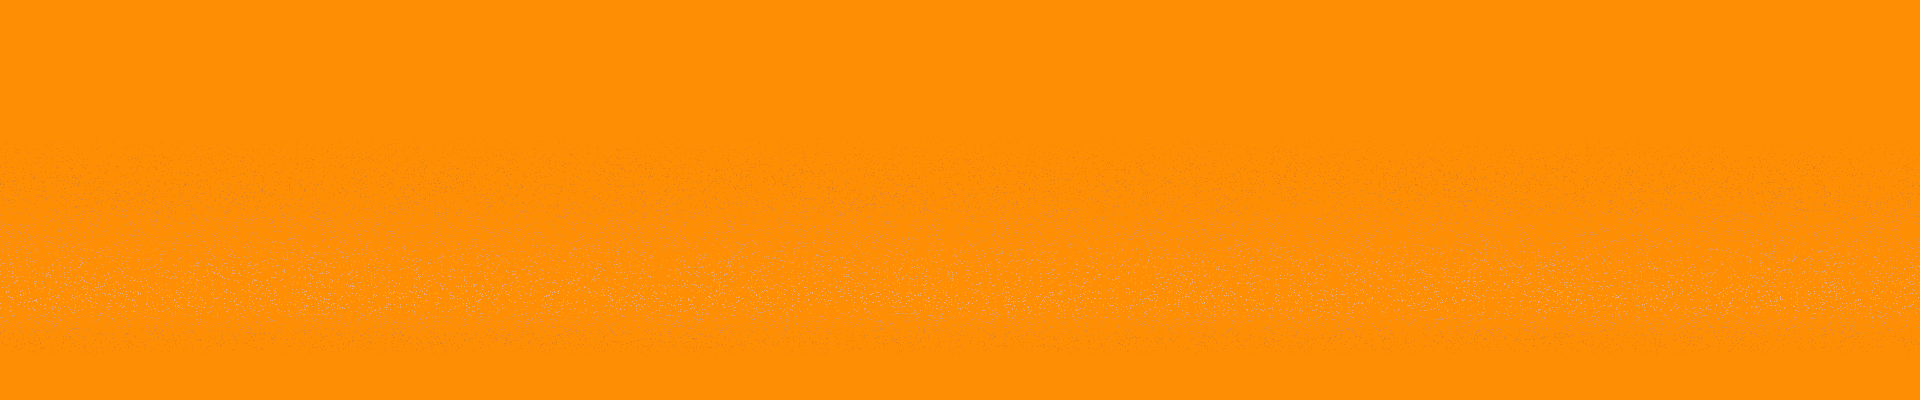 Orange_background.png